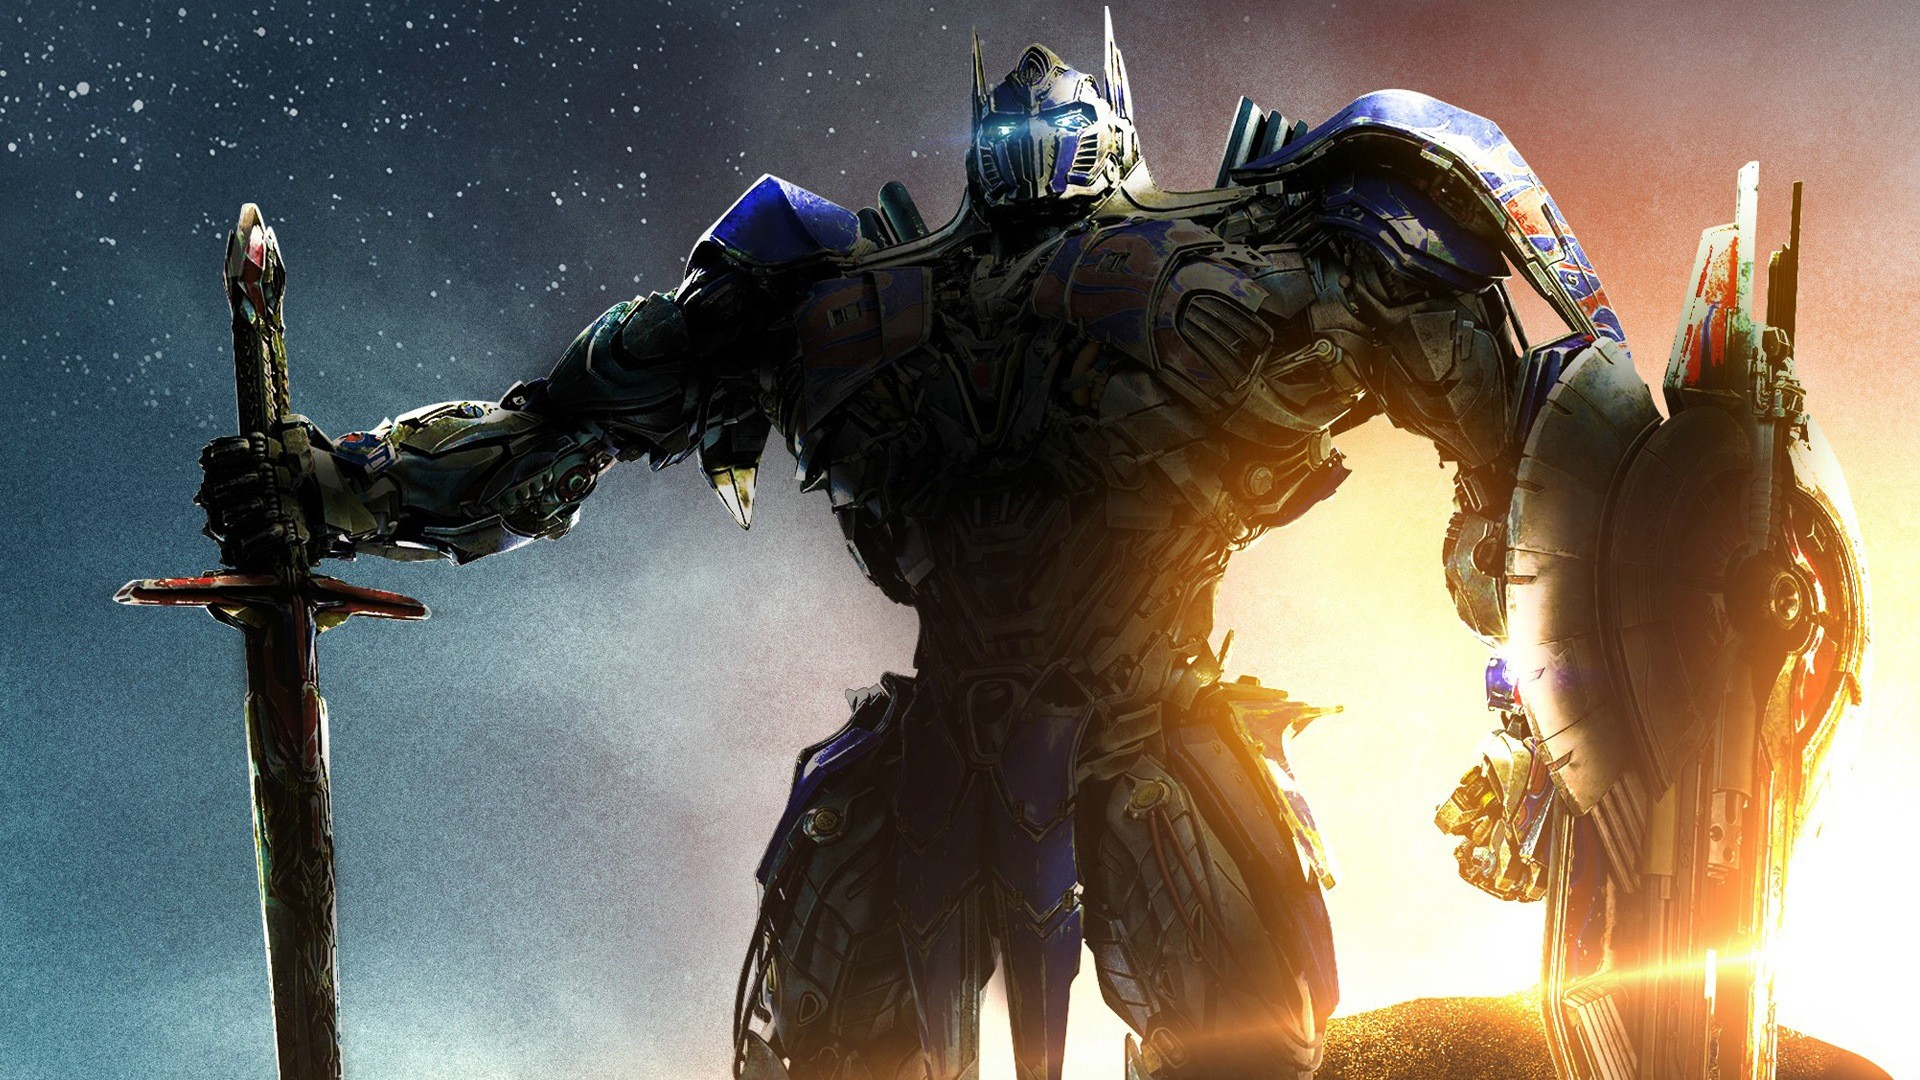 Cool Optimus Prime Transformers the Last Knight wallpaper Check  more at https://